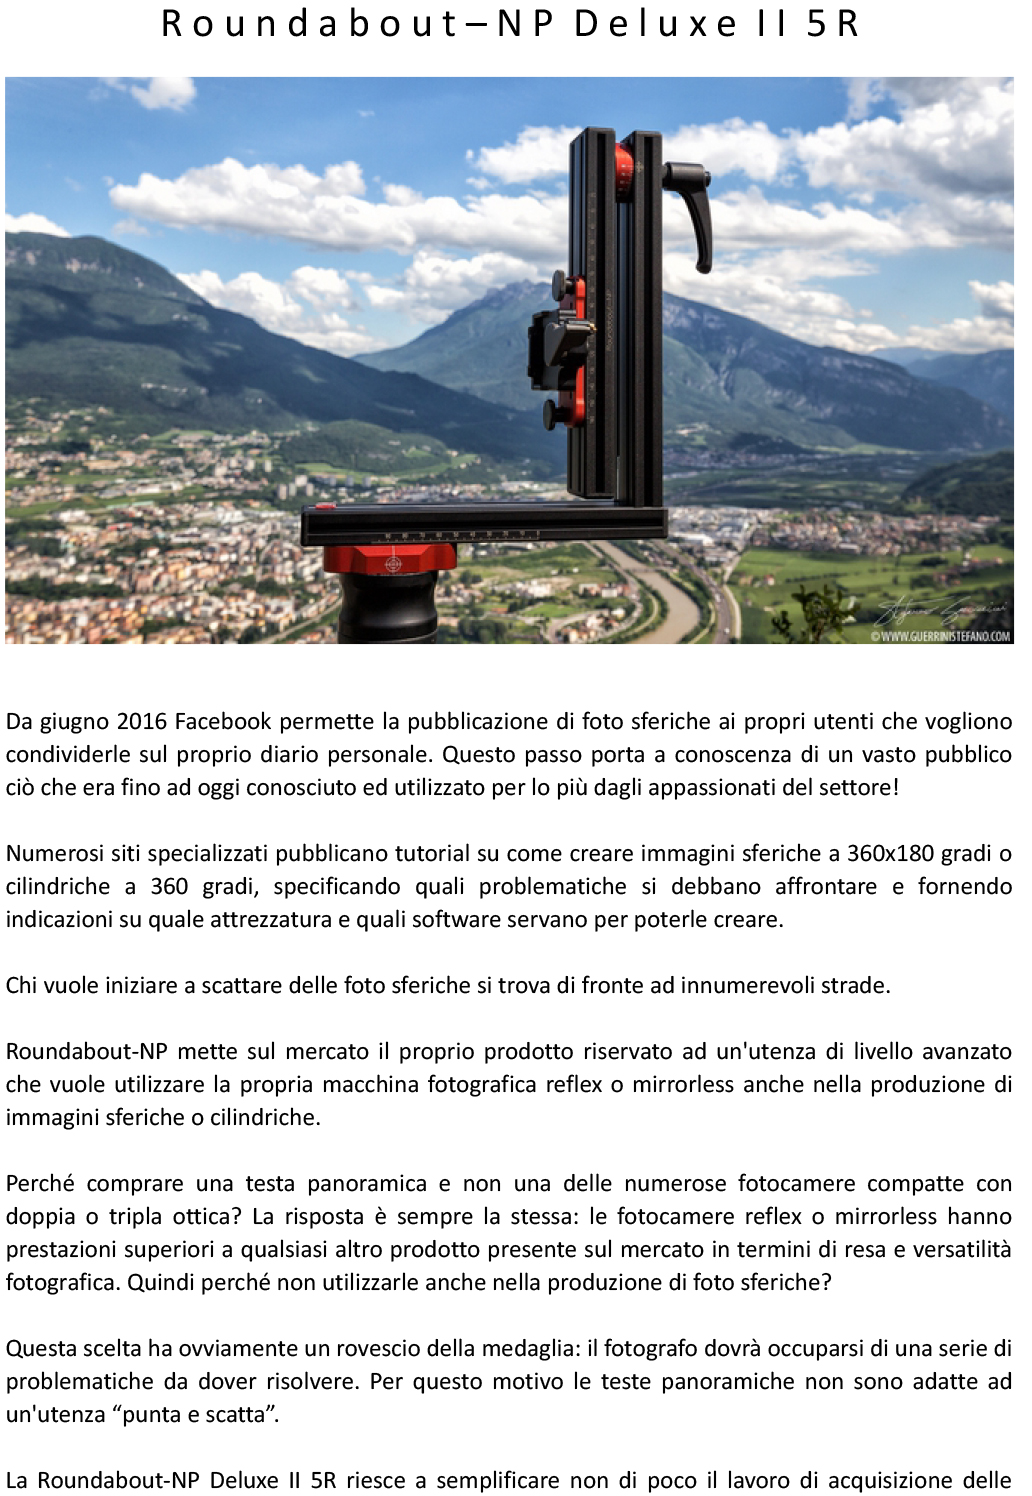 Roundabout NP italian review by Guerrini Stefano-1